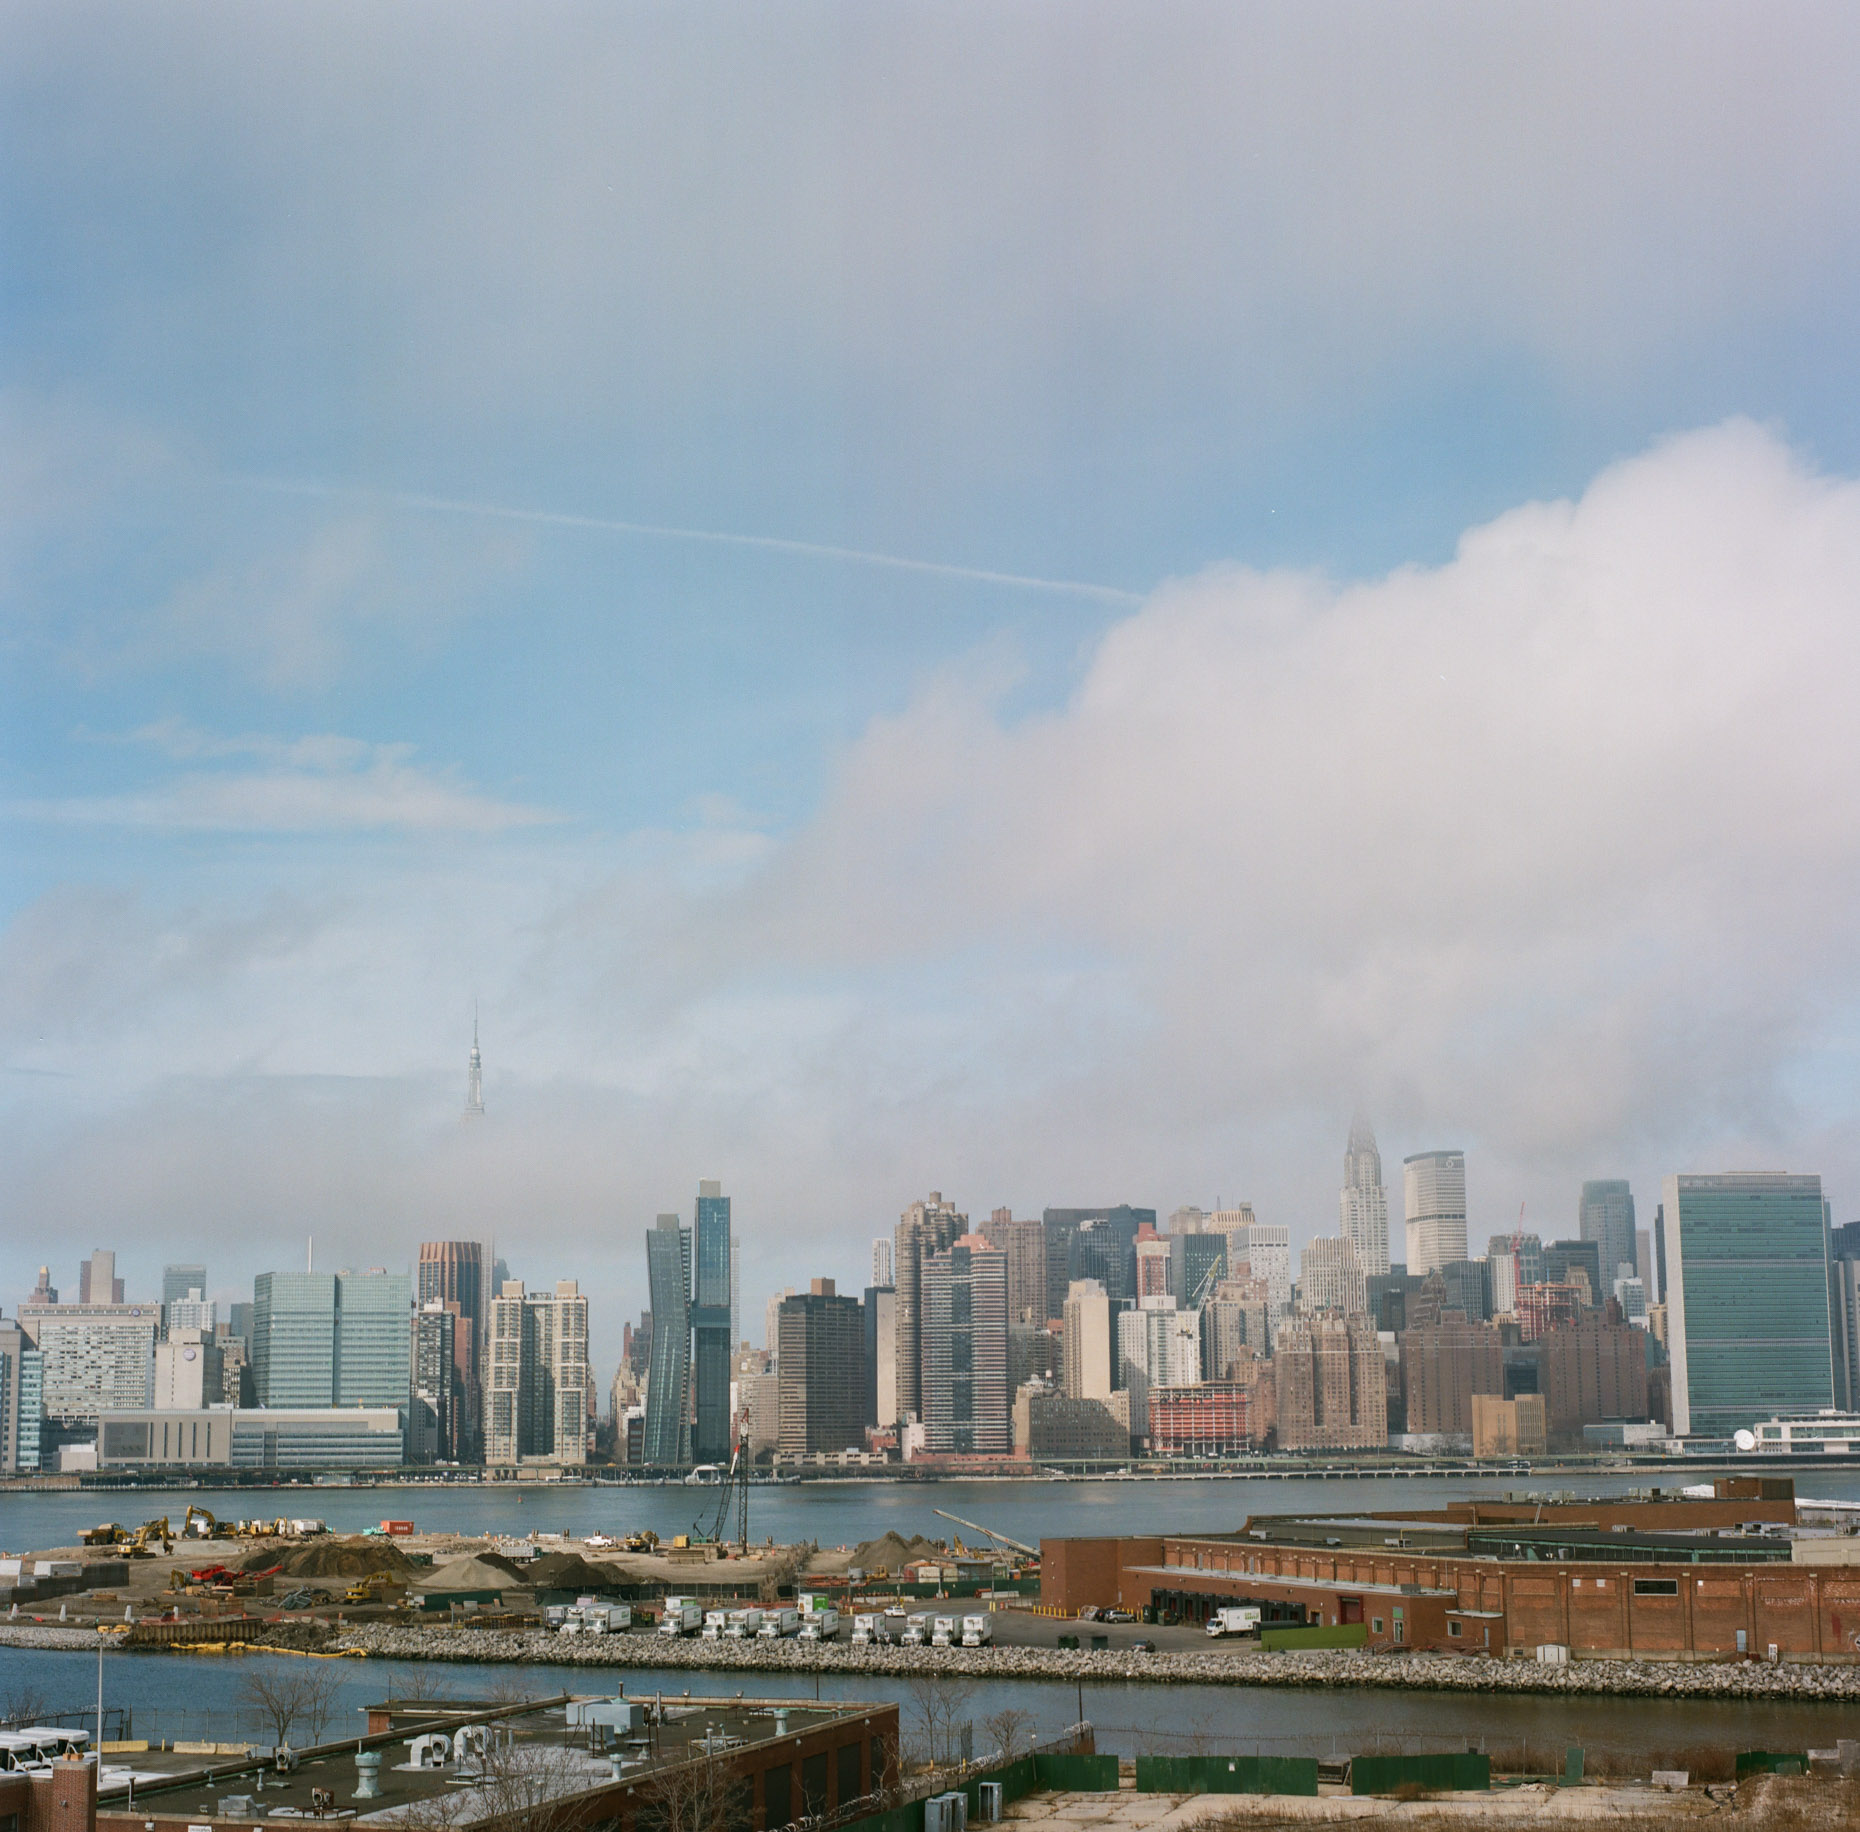 A city view of Manhattan from Brooklyn